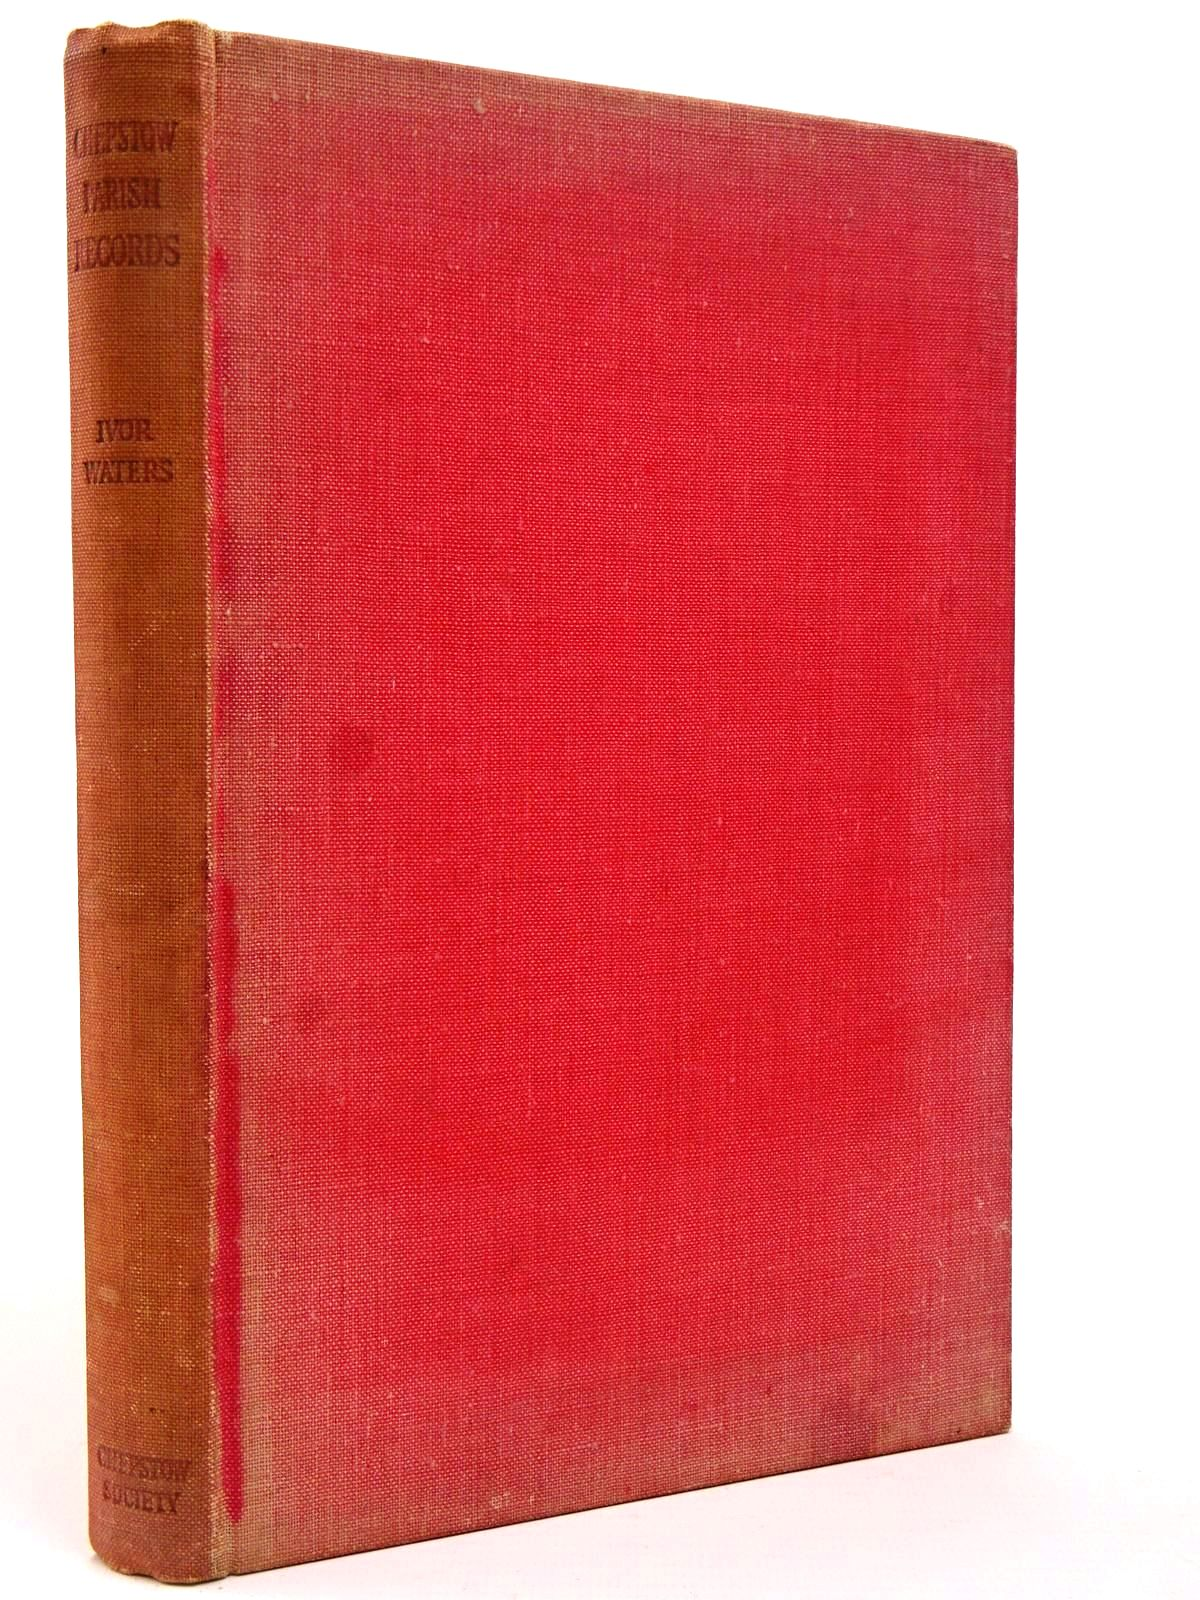 Photo of CHEPSTOW PARISH RECORDS written by Waters, Ivor published by The Chepstow Society (STOCK CODE: 2129567)  for sale by Stella & Rose's Books